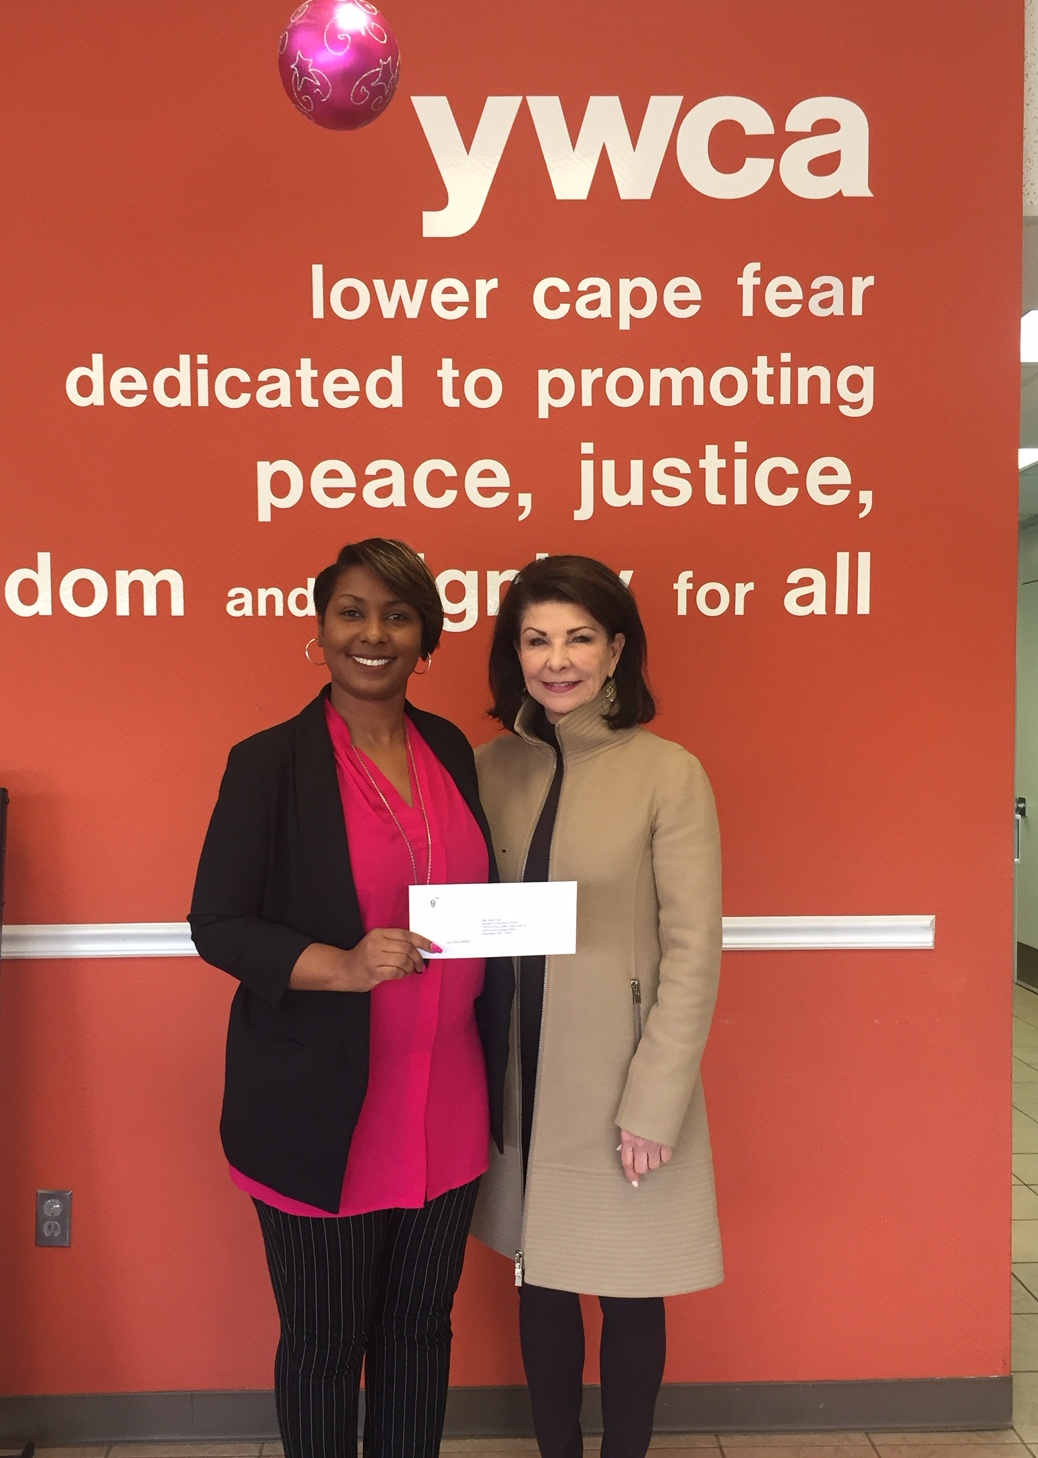 The Women's Fund was pleased to award a grant to the YWCA Lower Cape Fear, Wilmington for the New Choices Economic Empowerment program. Photographed here are (left) Charrise Hart, YWCA Lower Cape Fear CEO; and Anne Sorhagen, NCCF southeastern regional director.